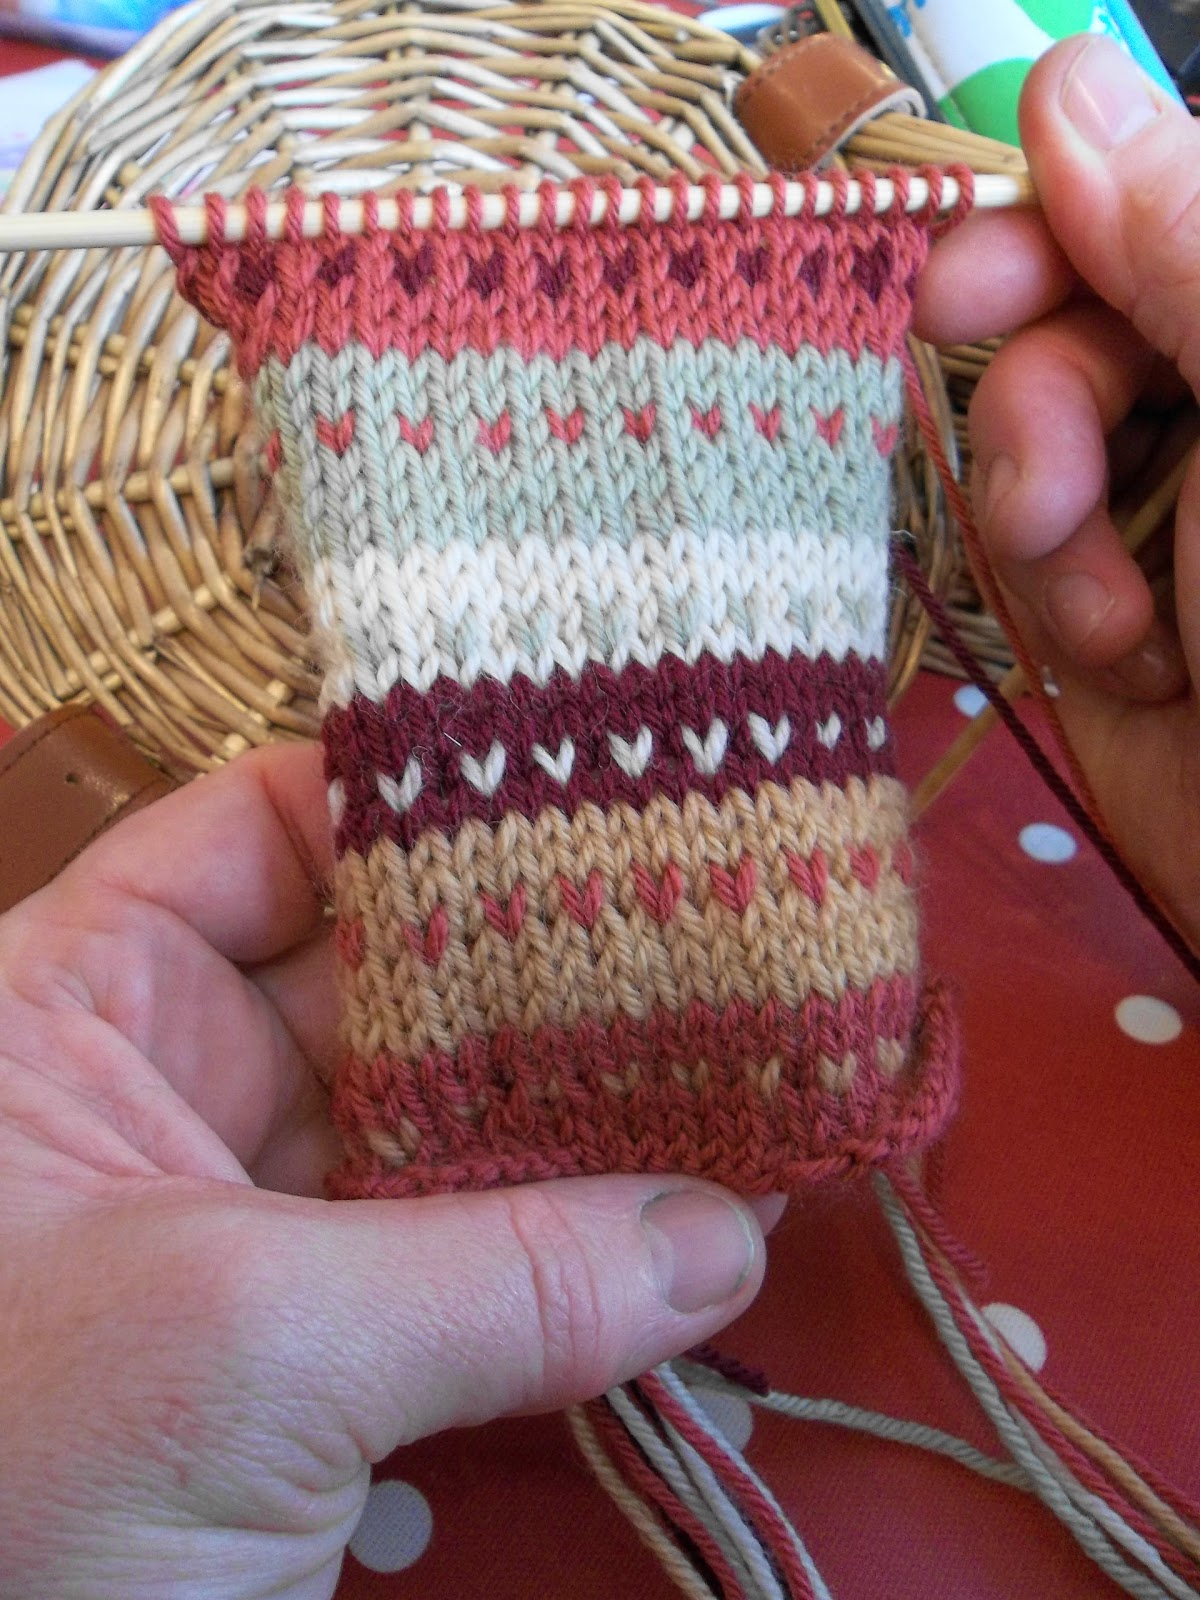 Knitting with Colour. Stranded Colour and Fair Isle Knitting Workshop.